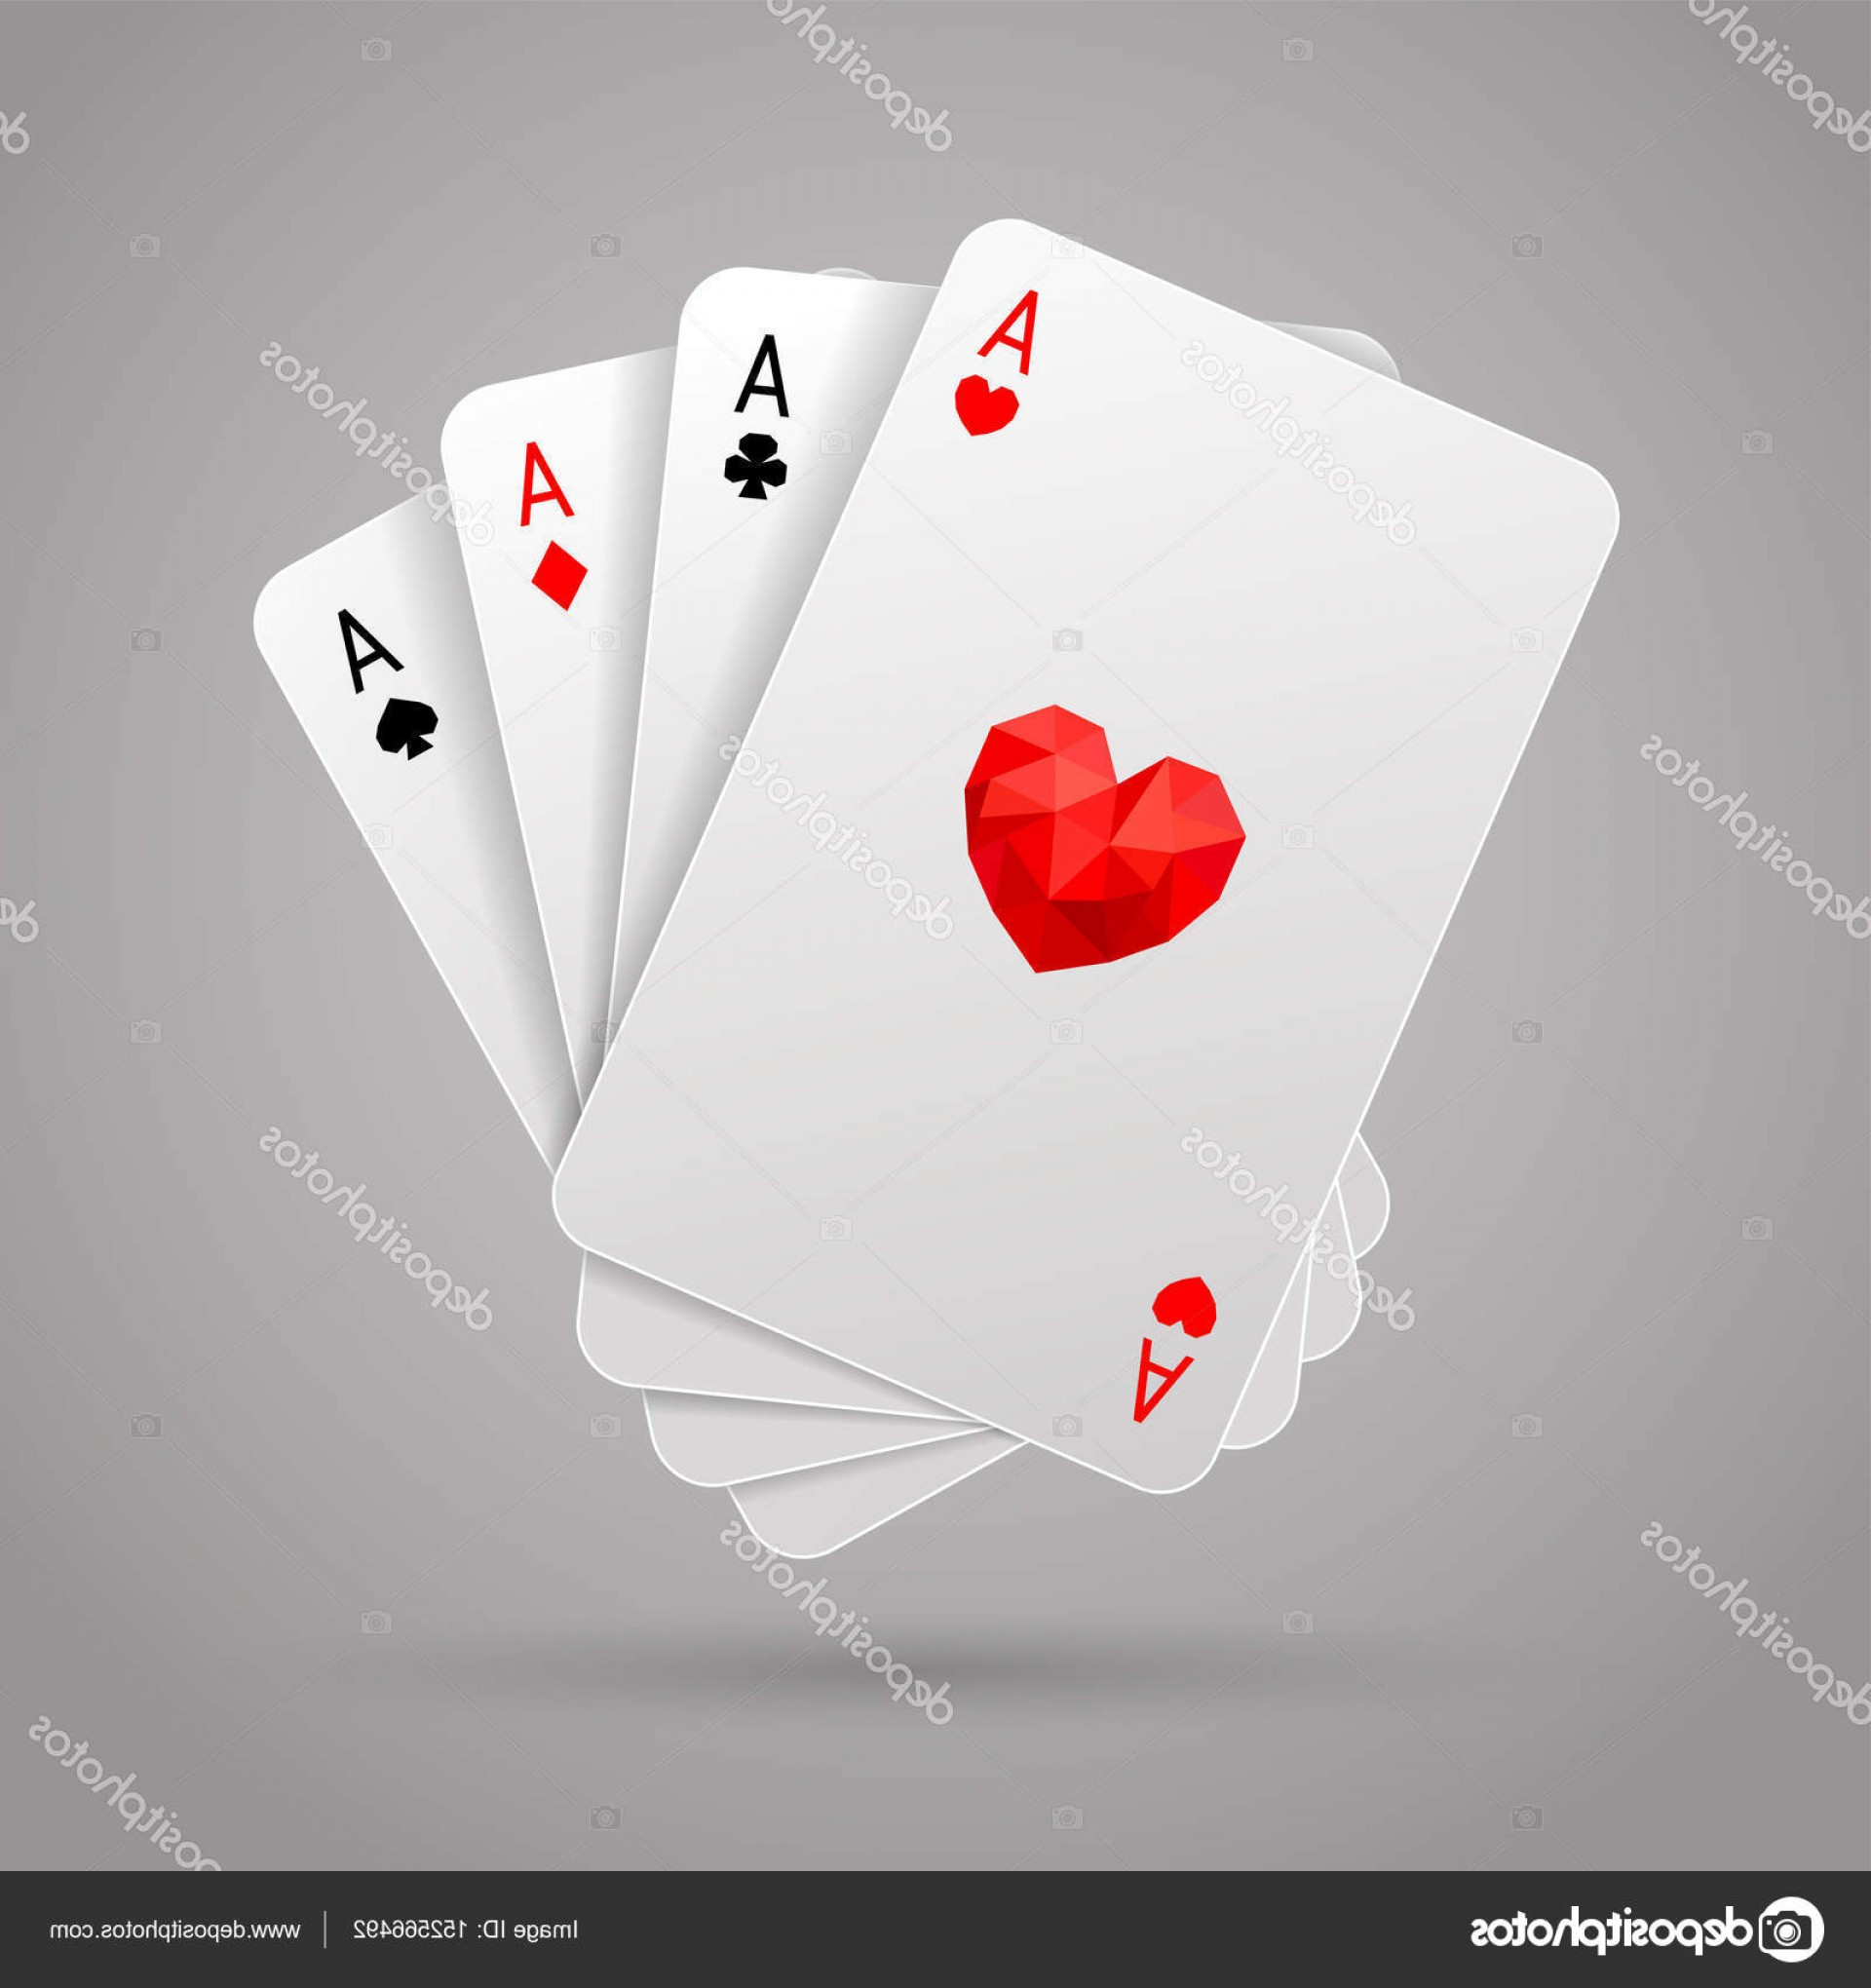 Poker Hand Vector: Stock Illustration Set Of Four Aces Playing